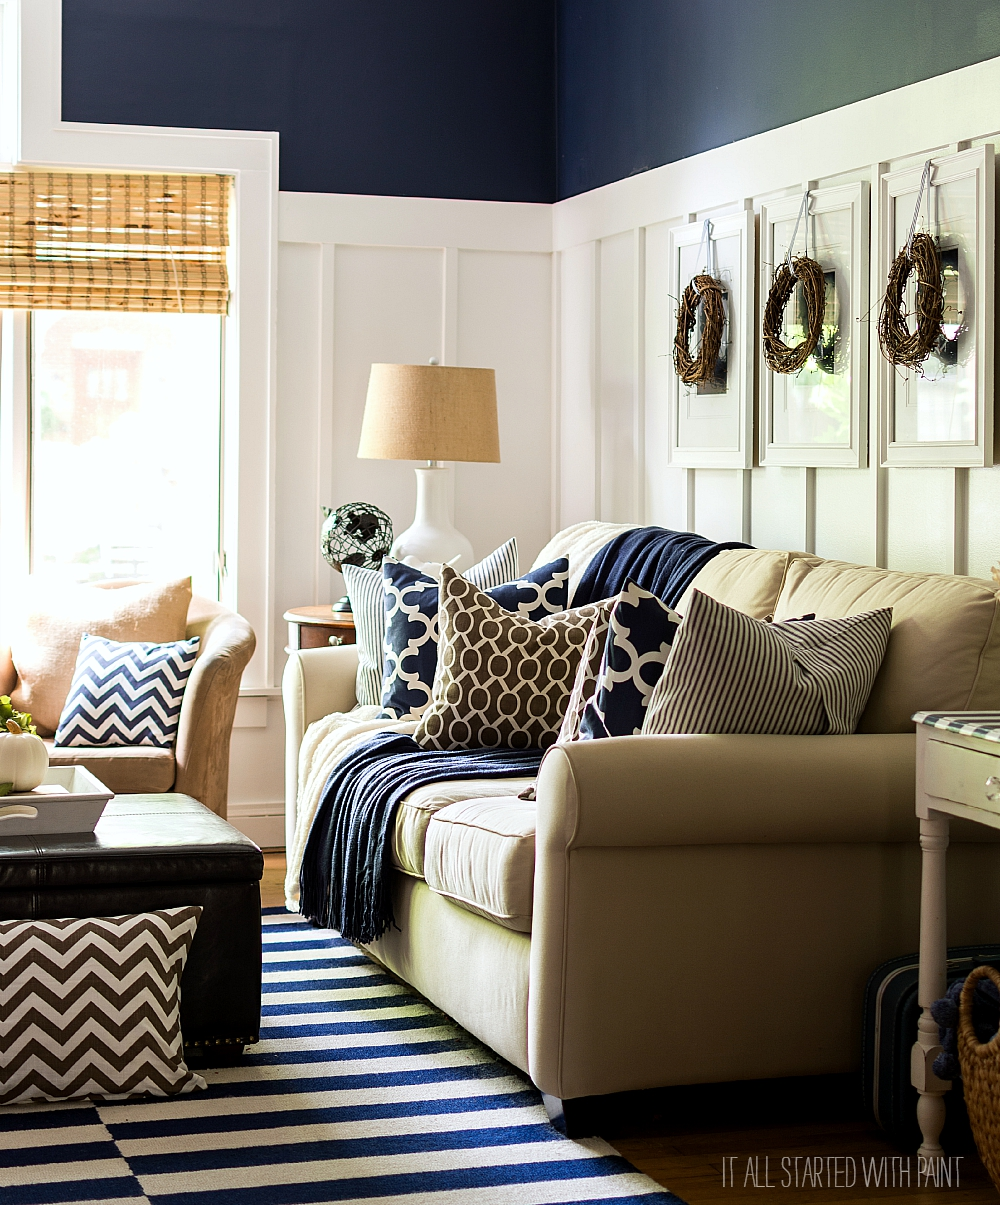 Fall Decorating Ideas Using Brown and Navy Neutrals: Board and Batten Living Room Decorated for Fall